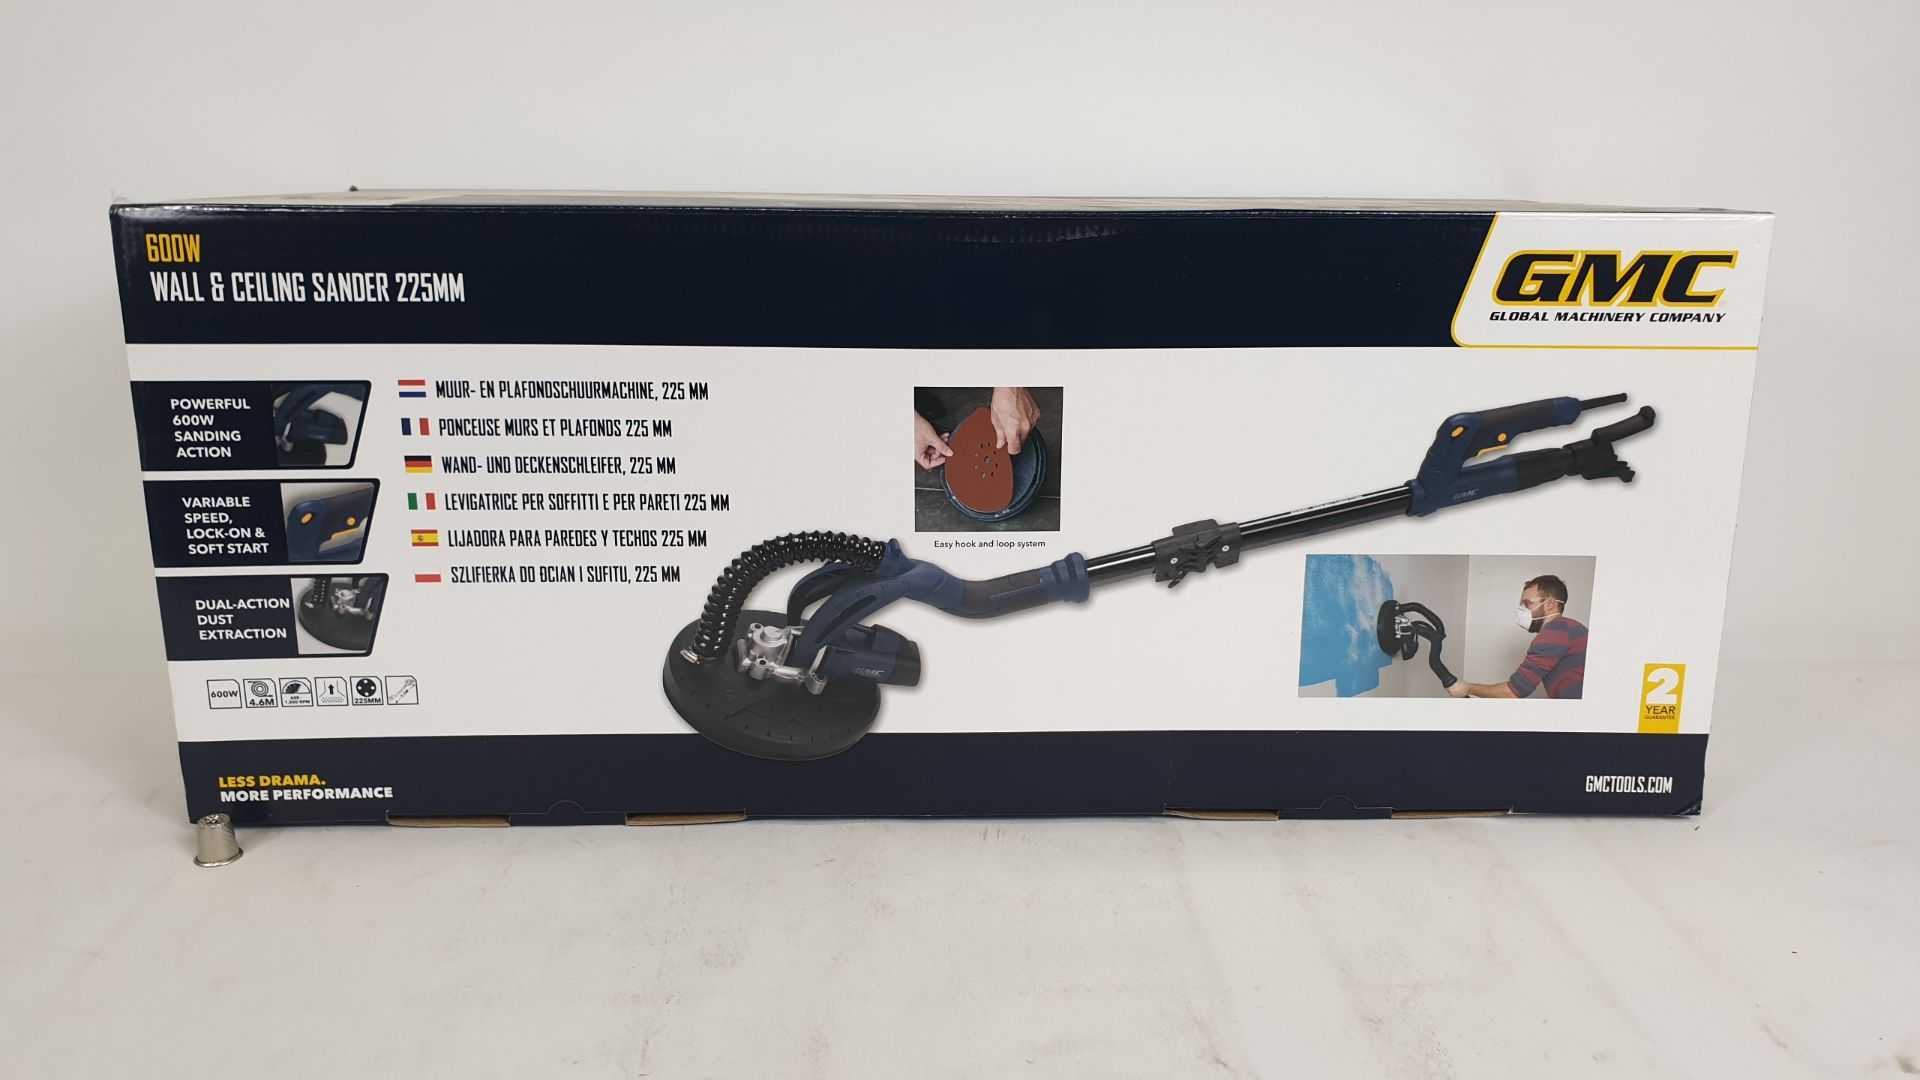 Lot 1549 - (LOT FOR THURSDAY 28TH MAY AUCTION) GMC 600W WALL AND CEILING SANDER 225M (PRODUCT CODE 264803) - (